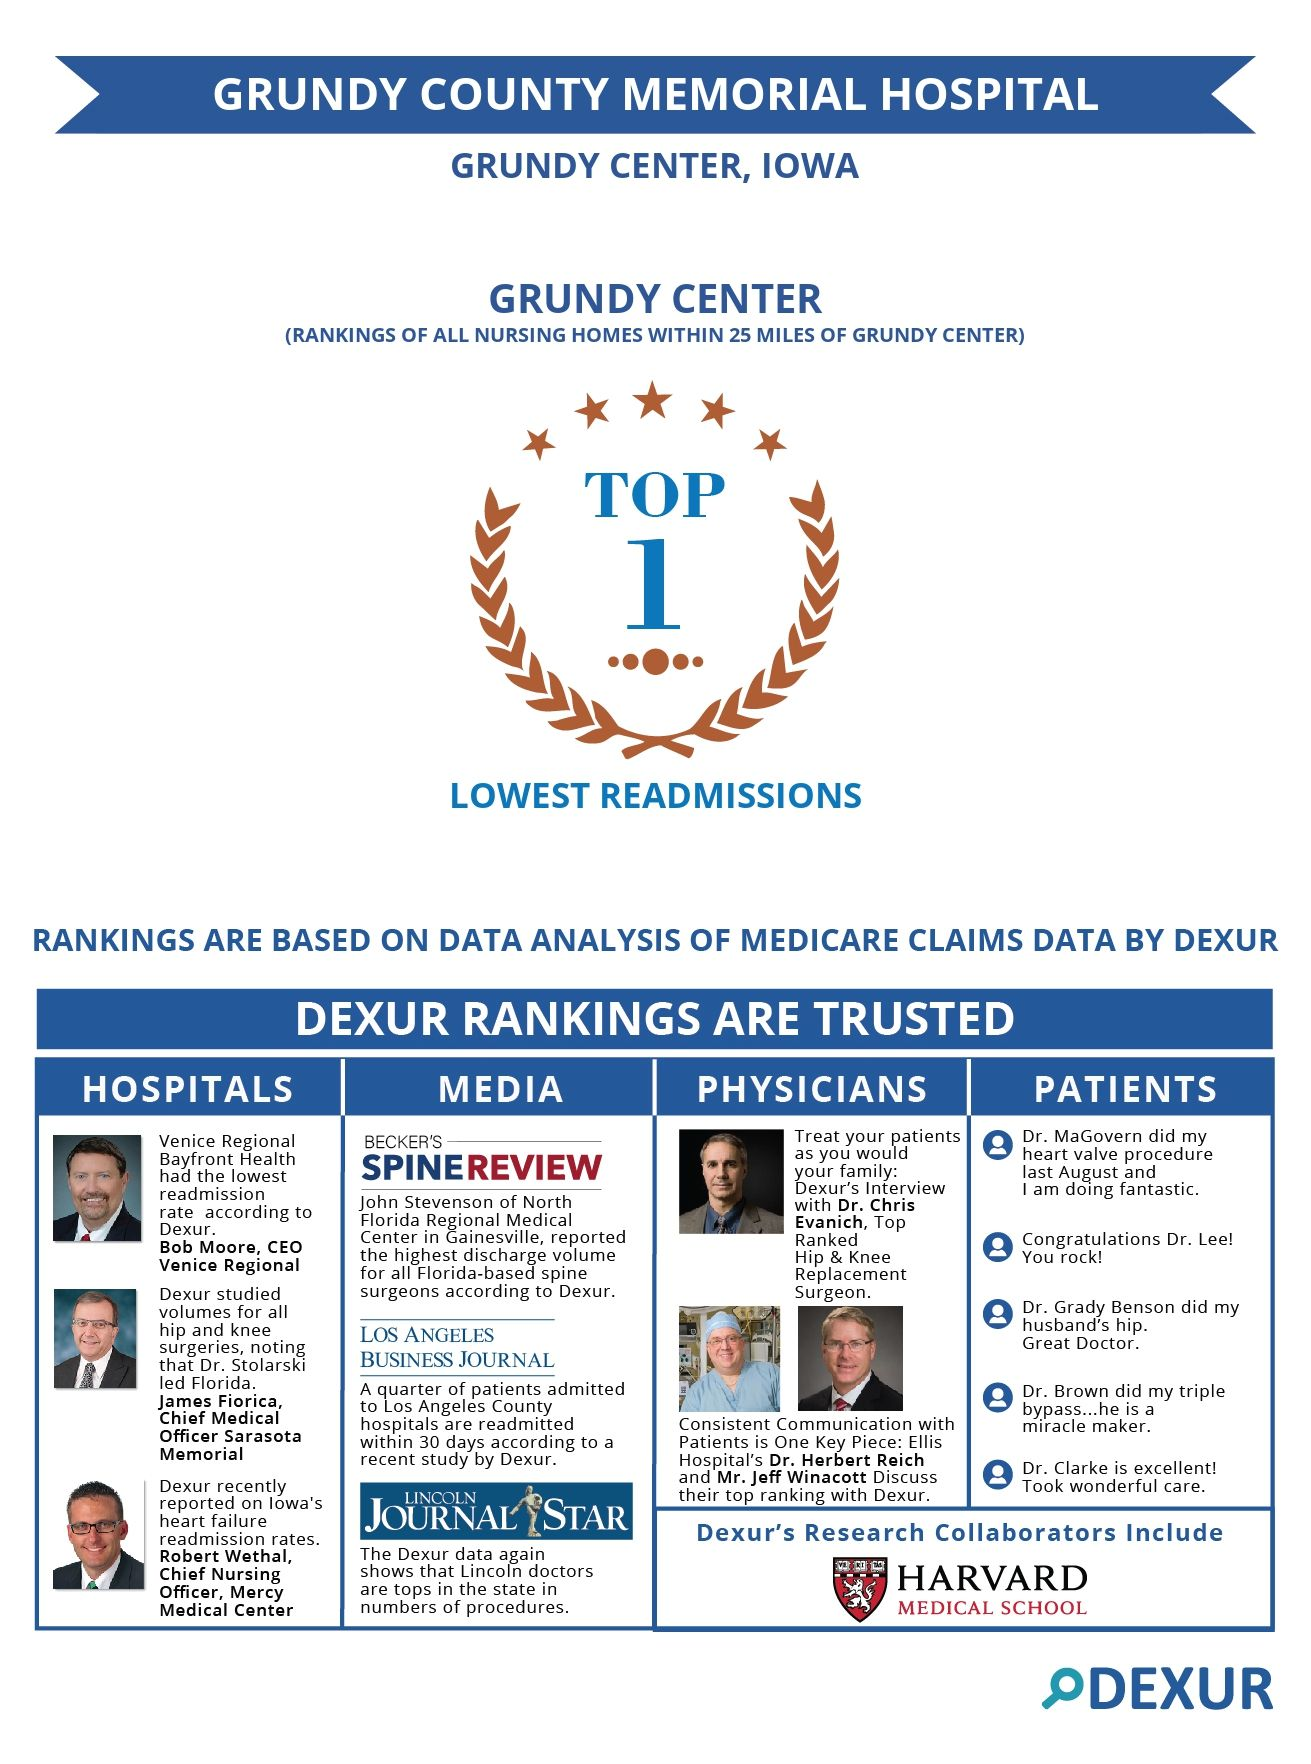 Grundy county memorial hospital is among the top ranked